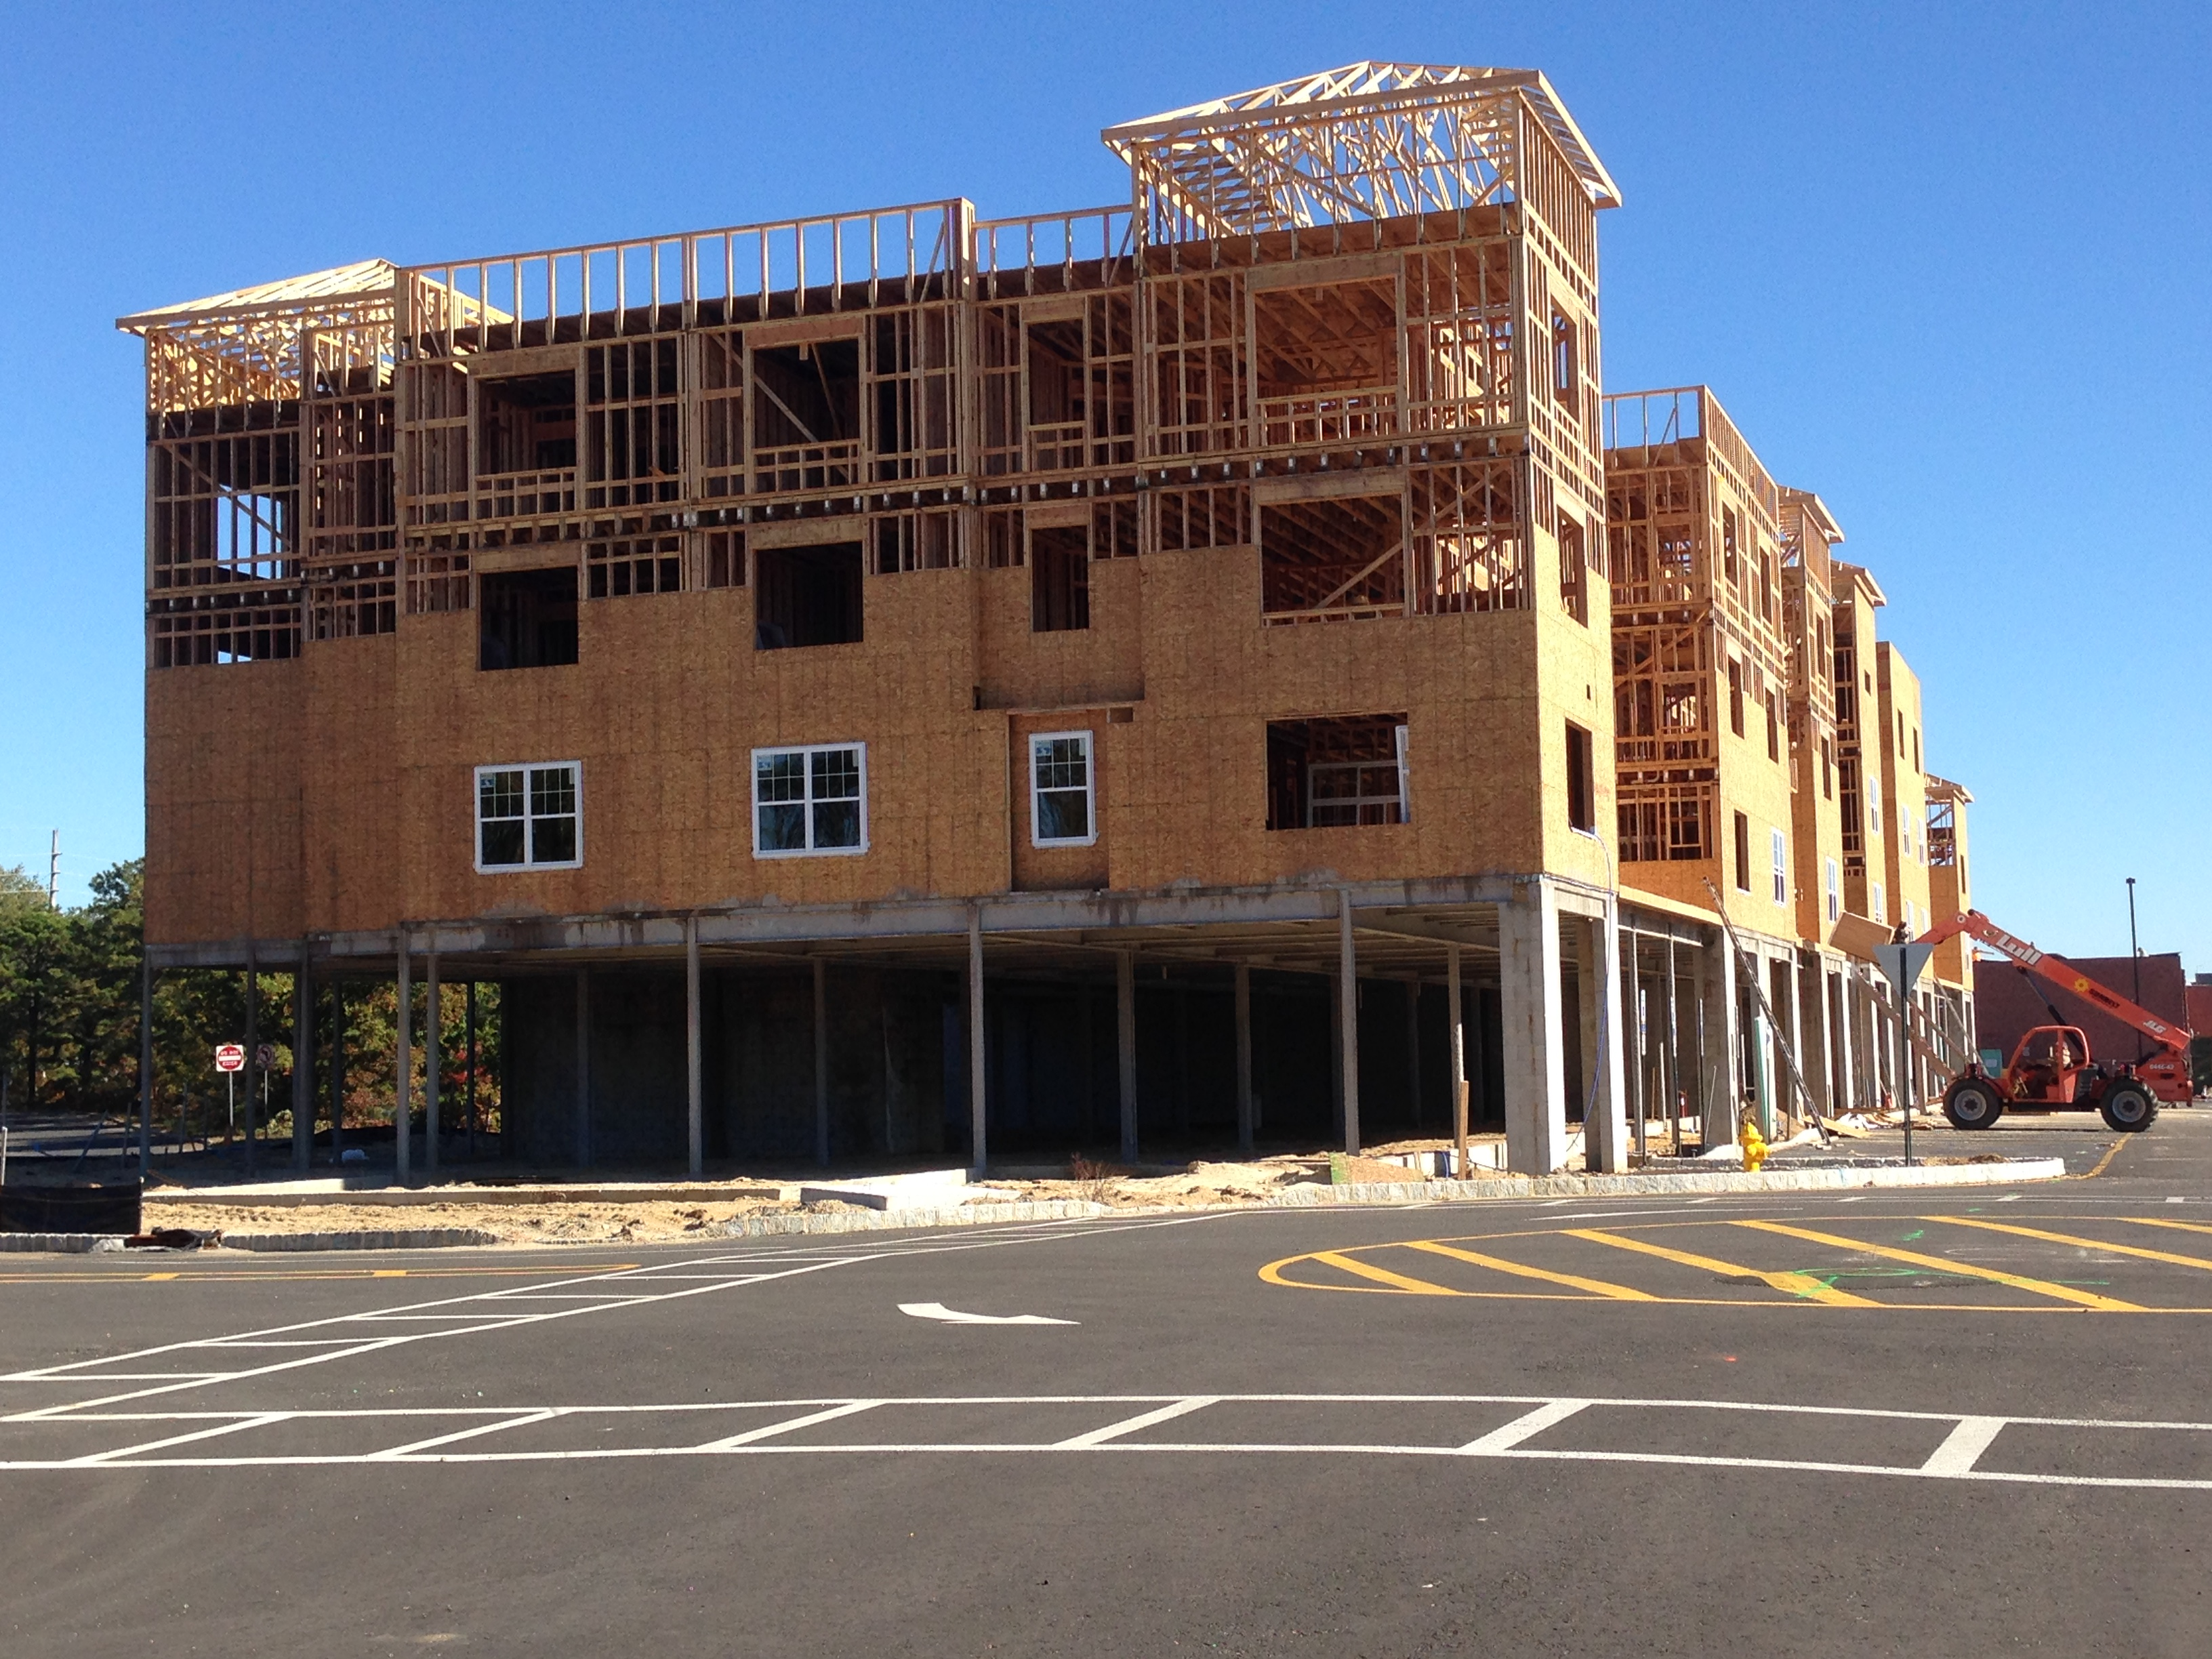 The New Visions, formerly Nobility Crest, development under construction in Brick, N.J. (Photo: Daniel Nee)